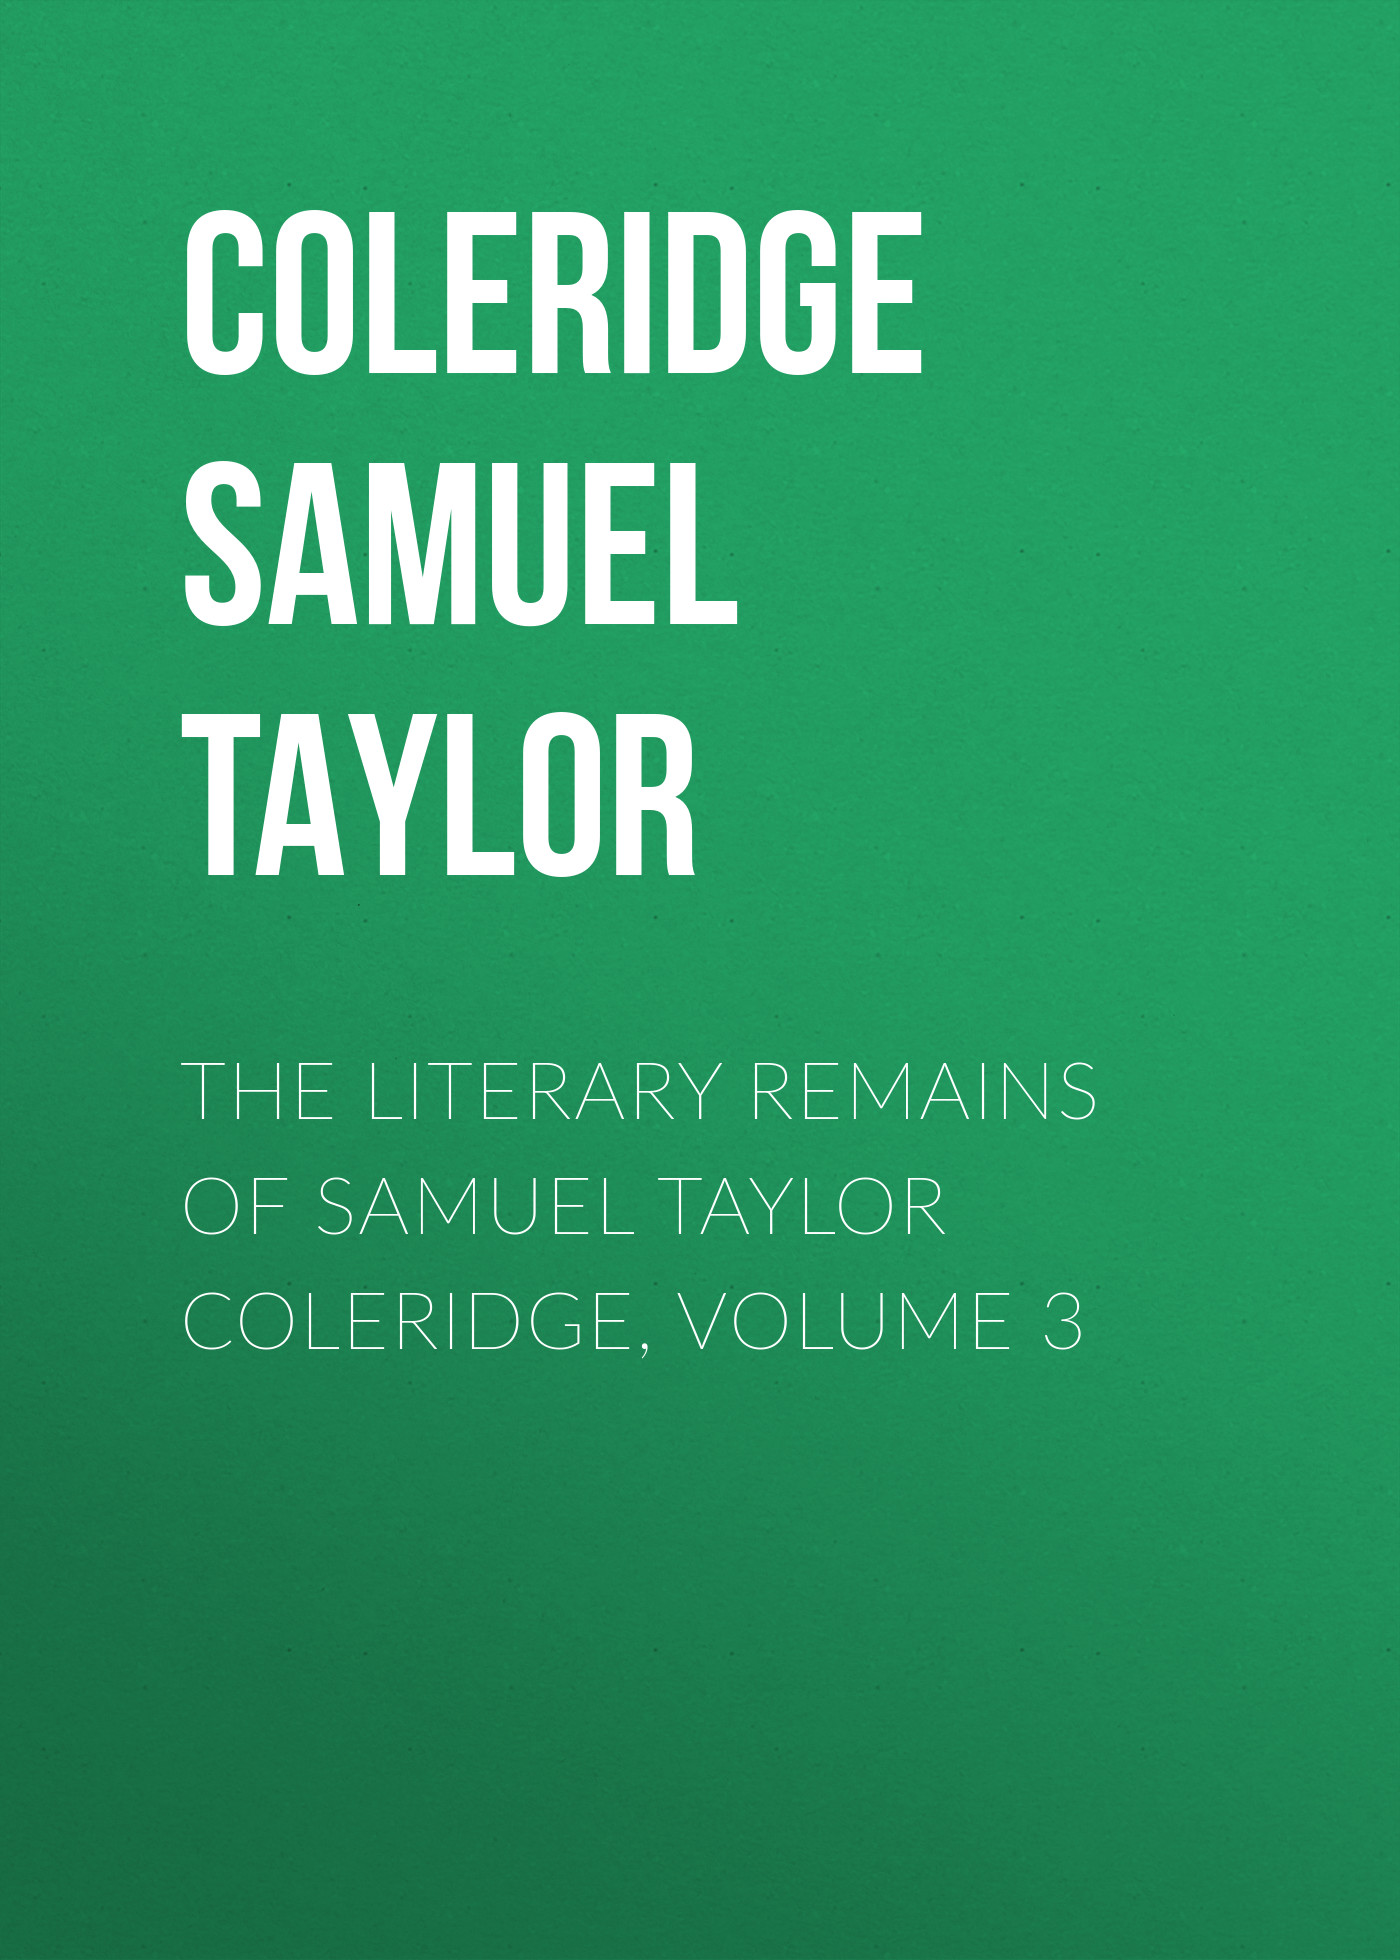 Coleridge Samuel Taylor The Literary Remains of Samuel Taylor Coleridge, Volume 3 the yale literary magazine volume 54 issue 7